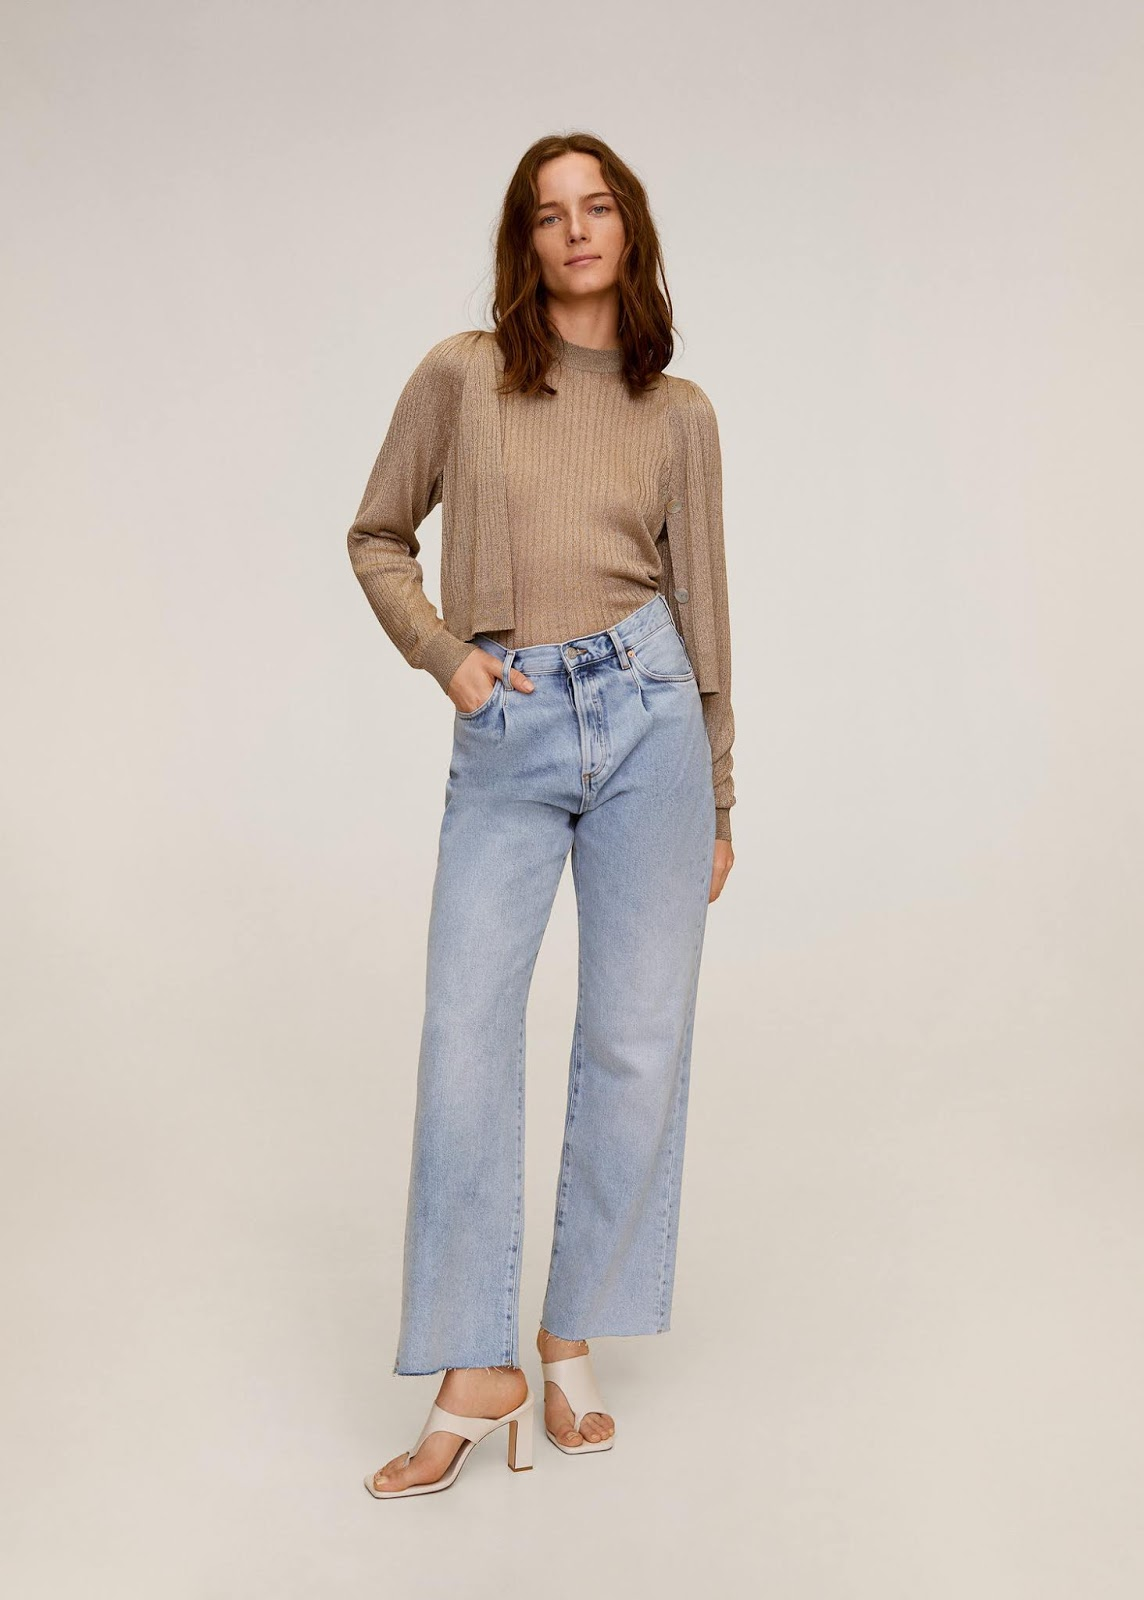 Denim Outfit Idea for Spring — Metallic cardigan and sweater matching set, culotte cropped wide-leg jeans, and white mule sandals